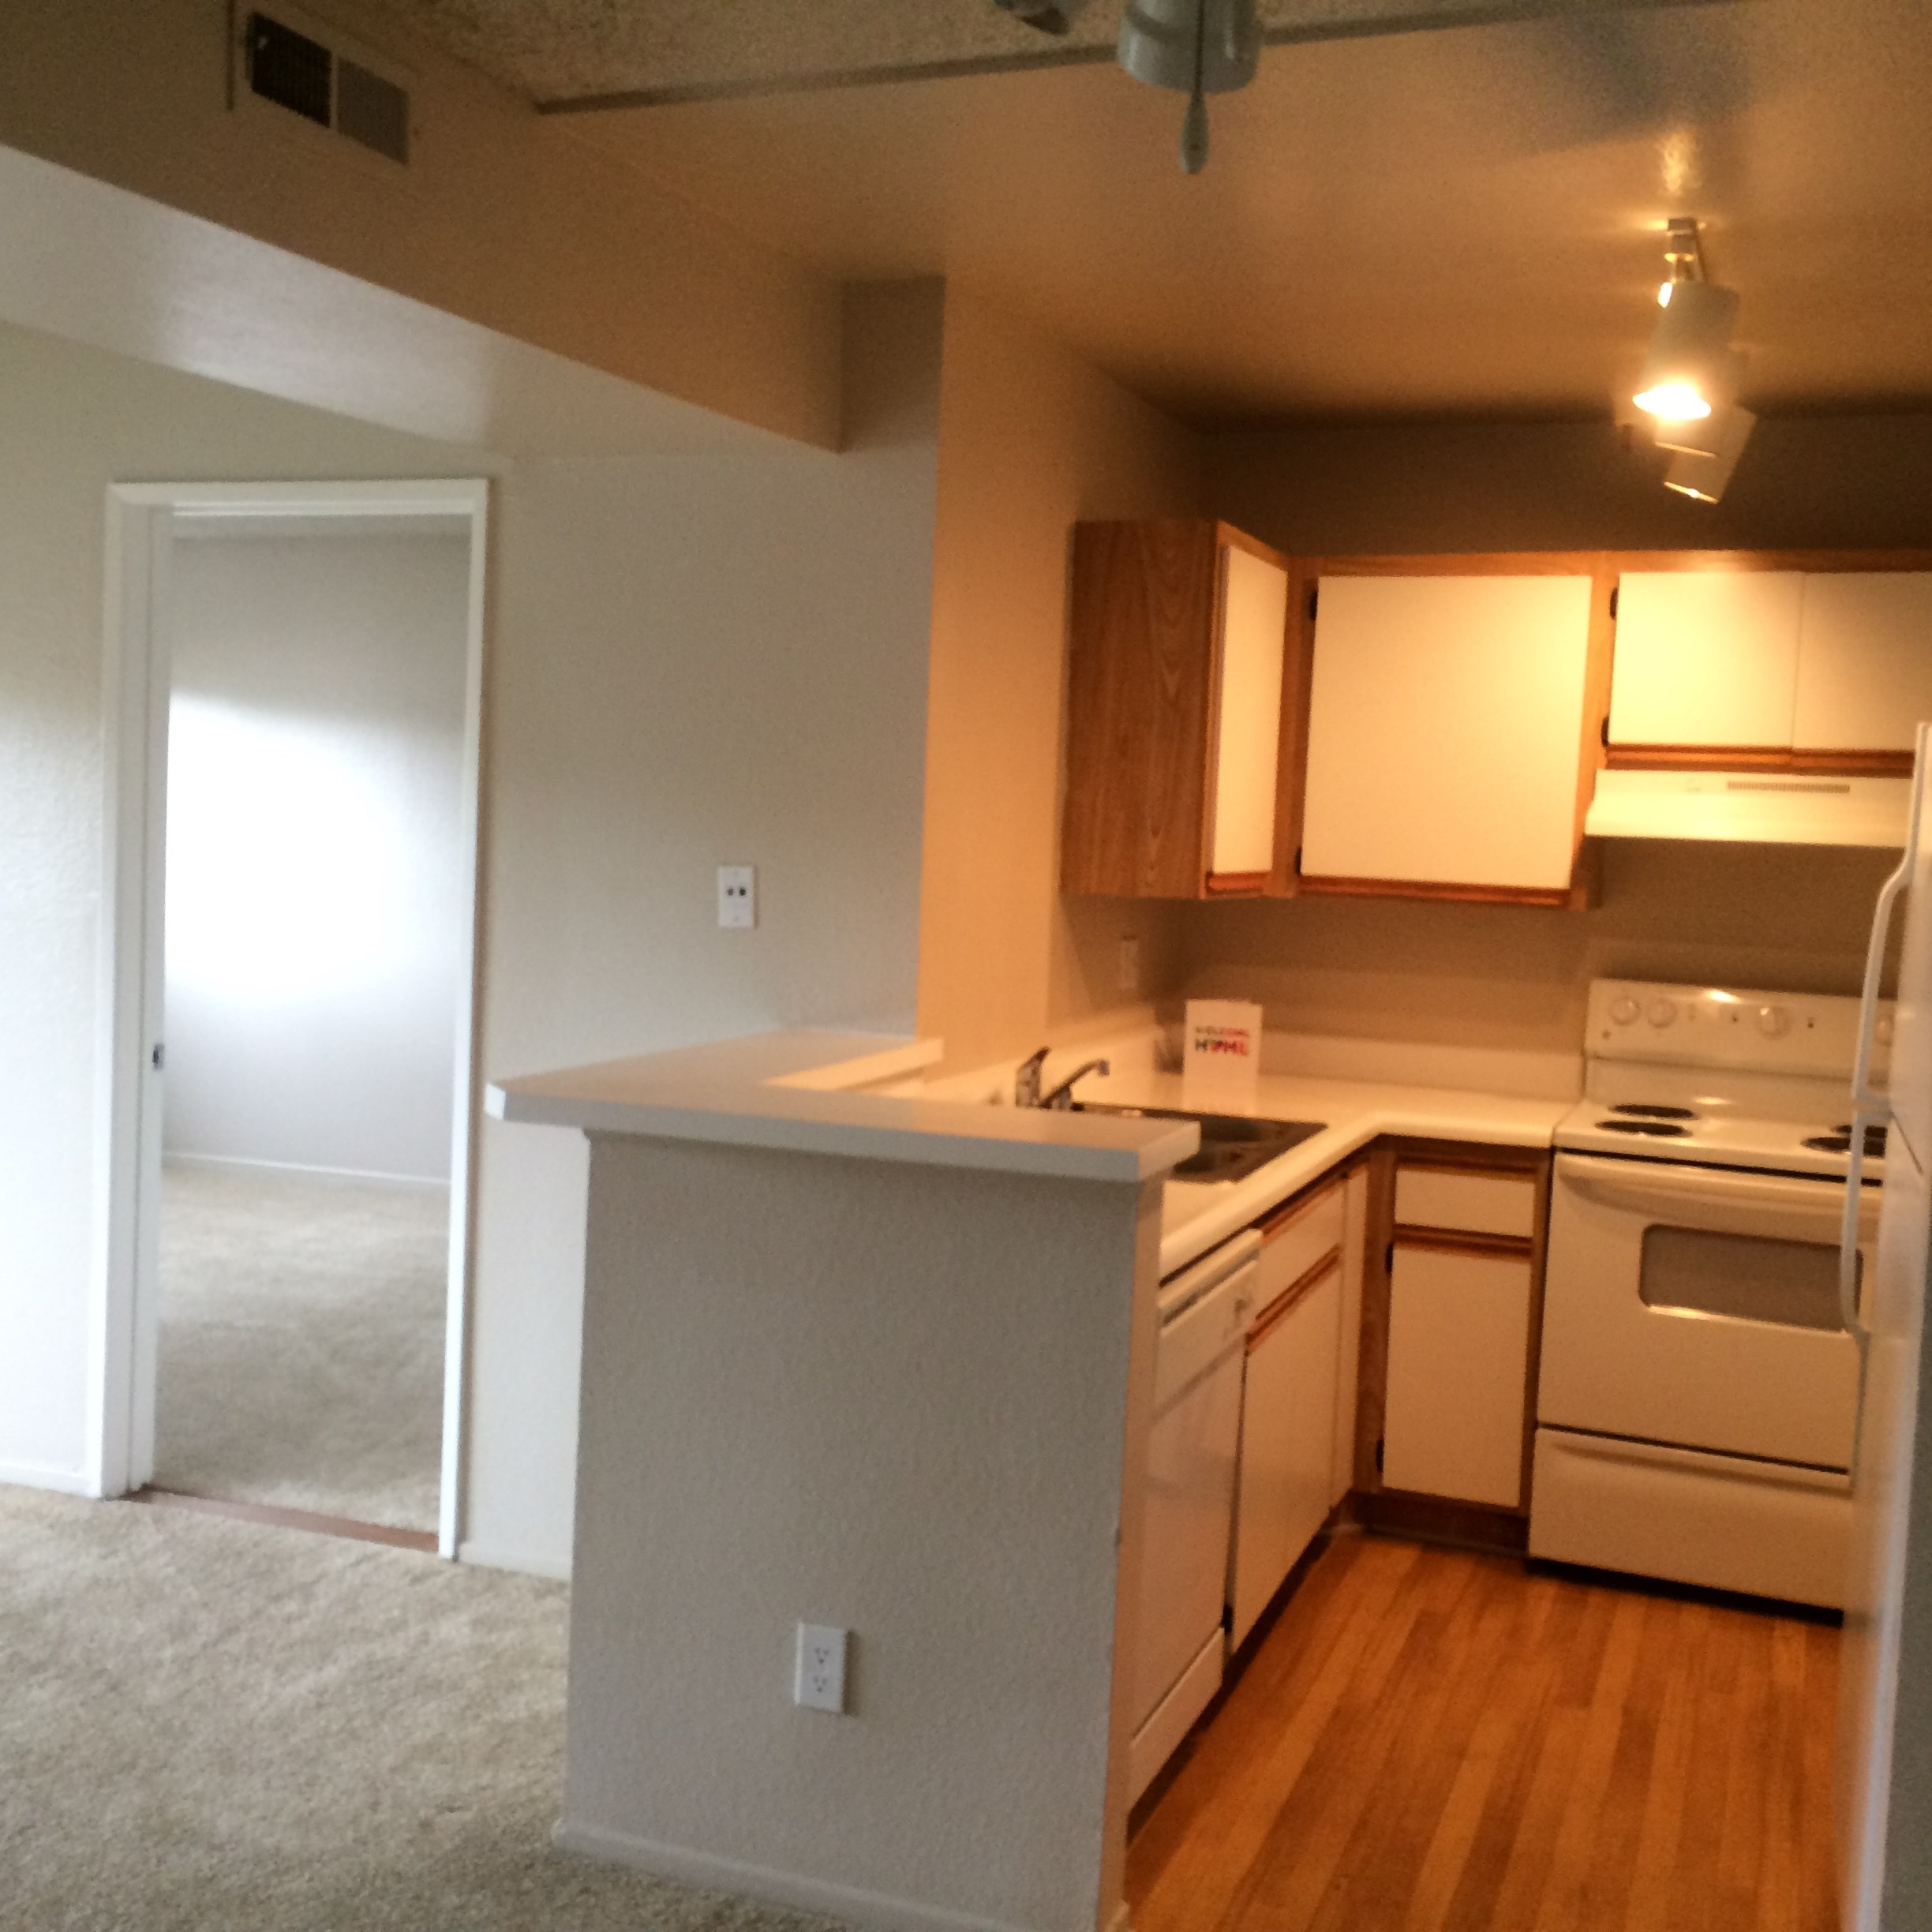 Available Room For Rent In A Furnished Apartment Near LA Downtown In Los Ange